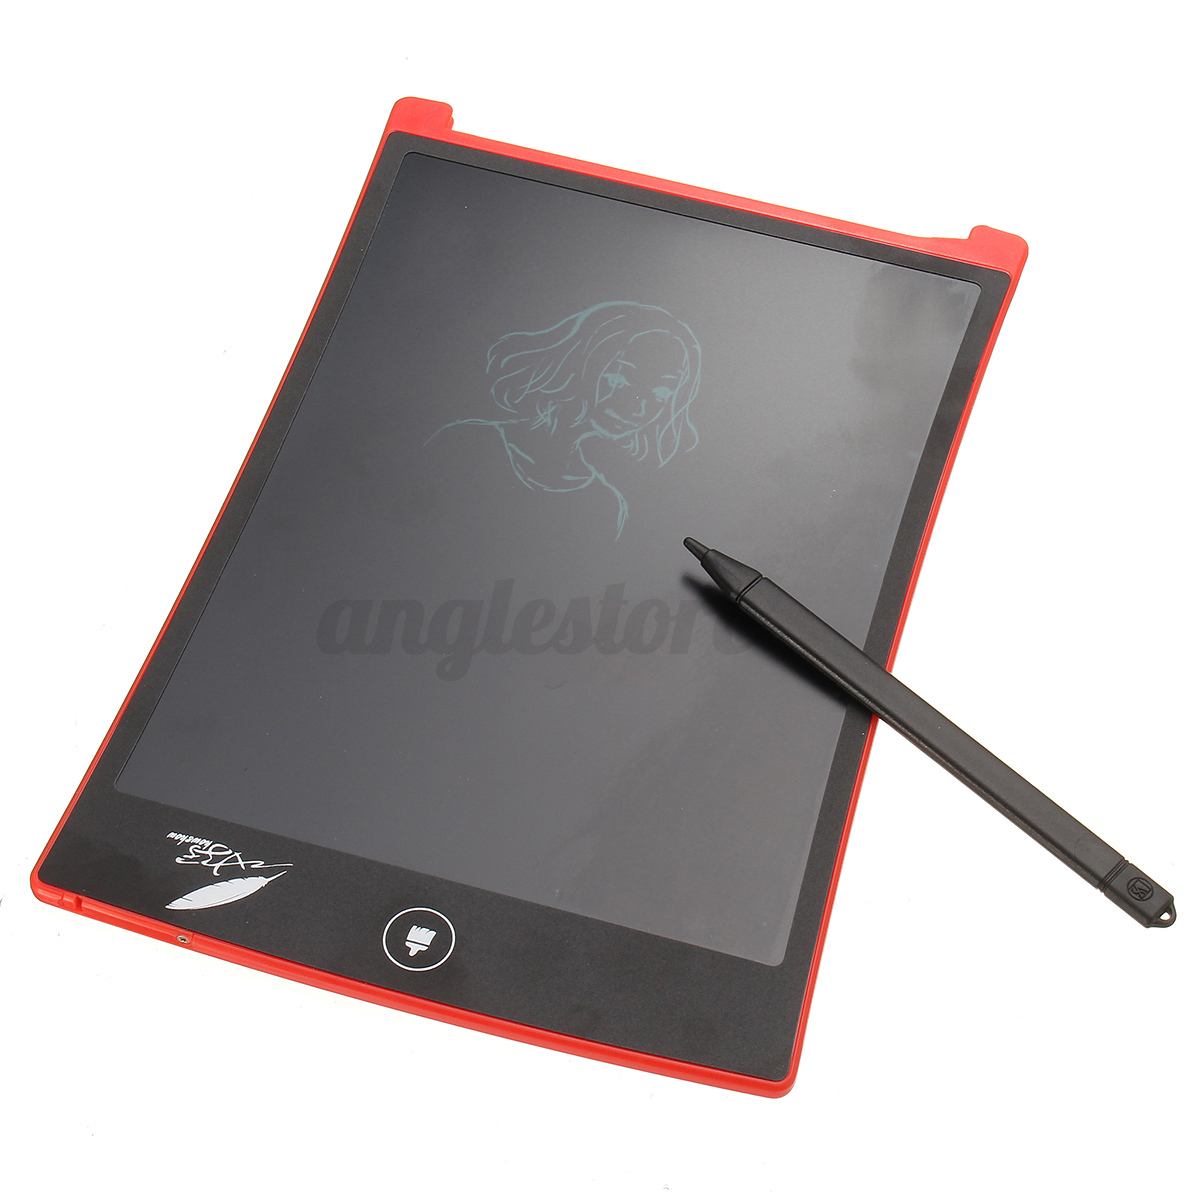 electronic writing pad 10375 items  veikk drawing pad digital drawing graphics tablet s640 ultra-thin 6x4  85  inch ultra bright lcd writing pad digital drawing tablet electronic.